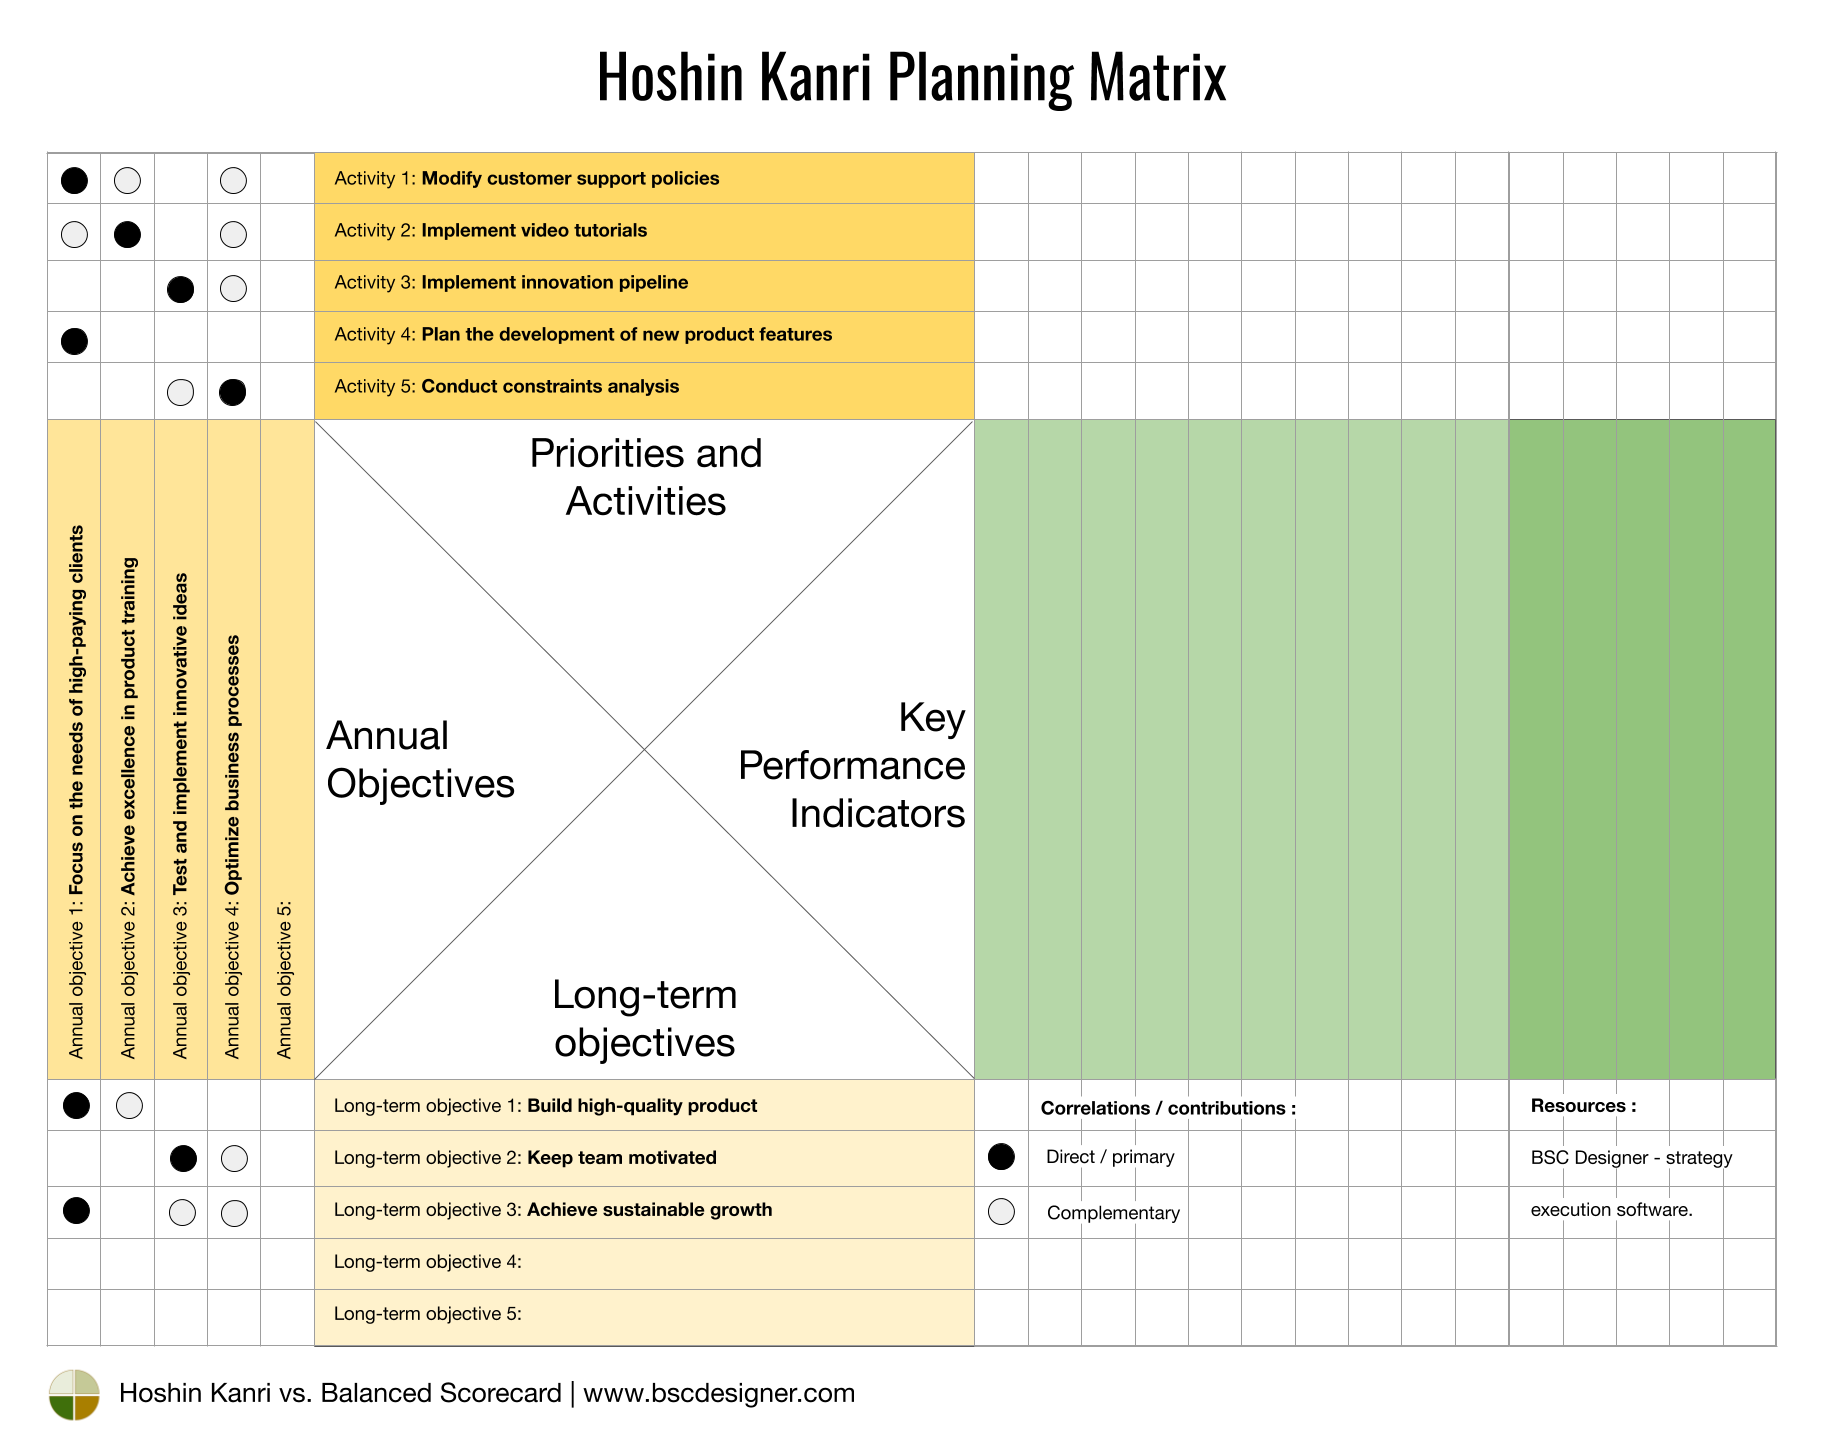 Hoshin Kanri - priorities and activities